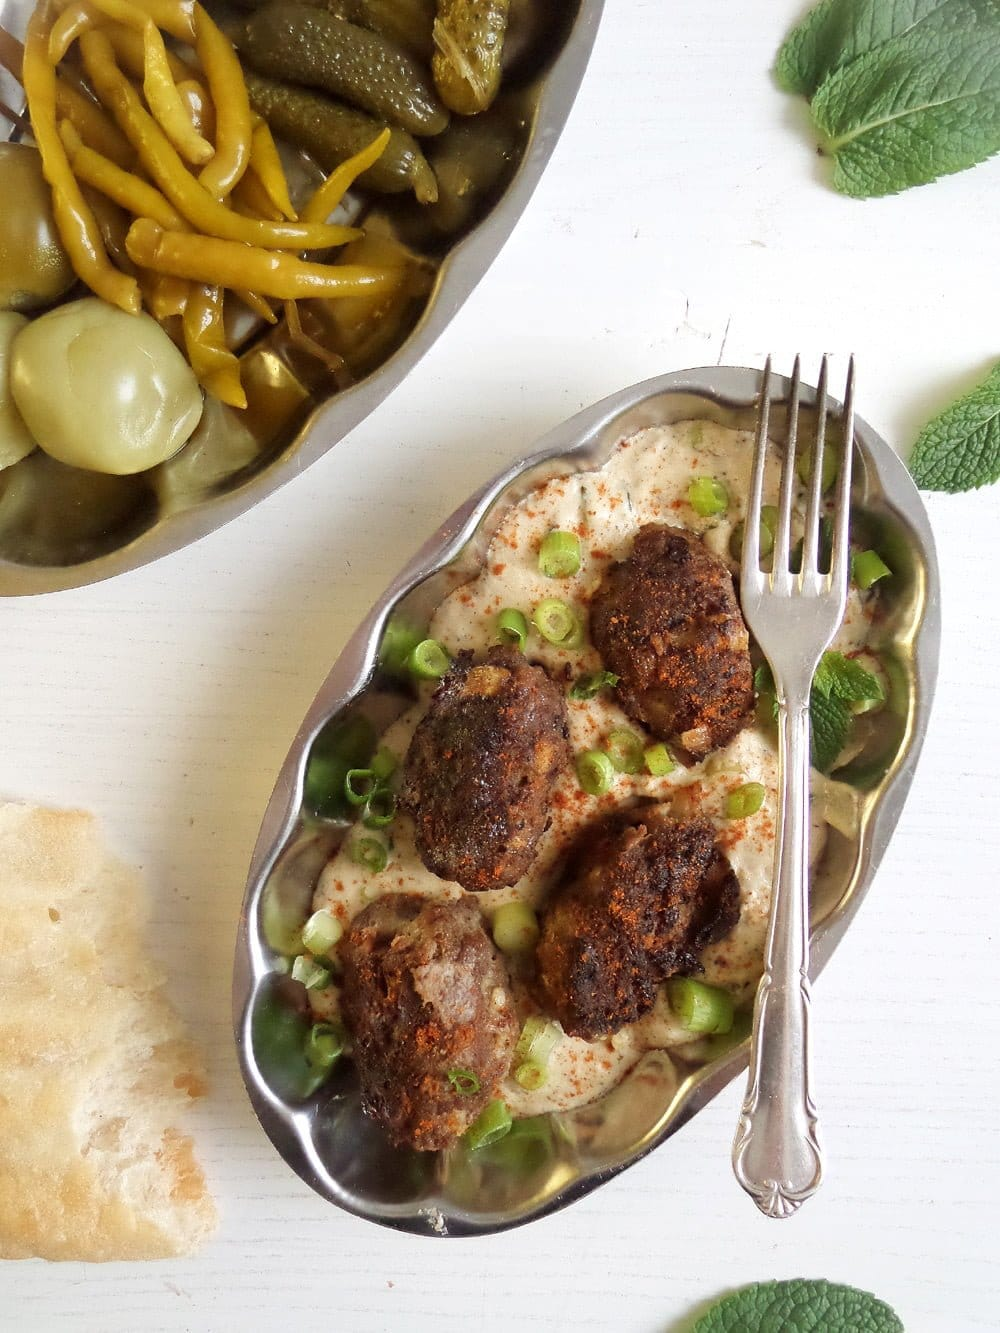 turkish meatballs yogurt Turkish Meat Rolls In Yogurt Sauce